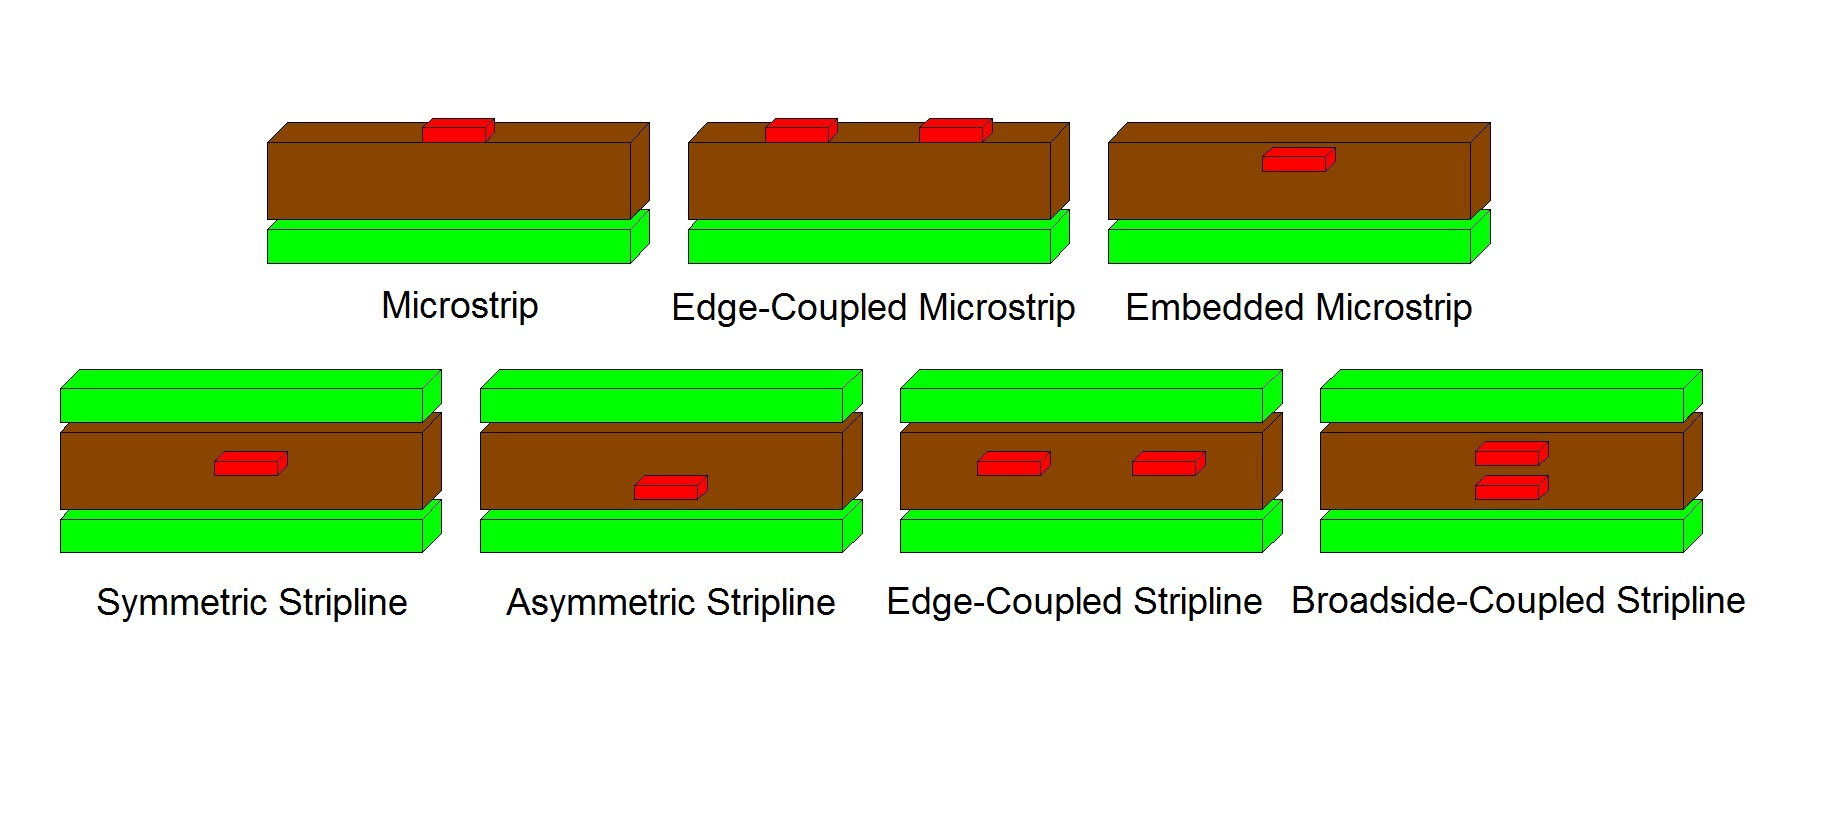 An illustration of different microstrip vs stripline routing configuration examples